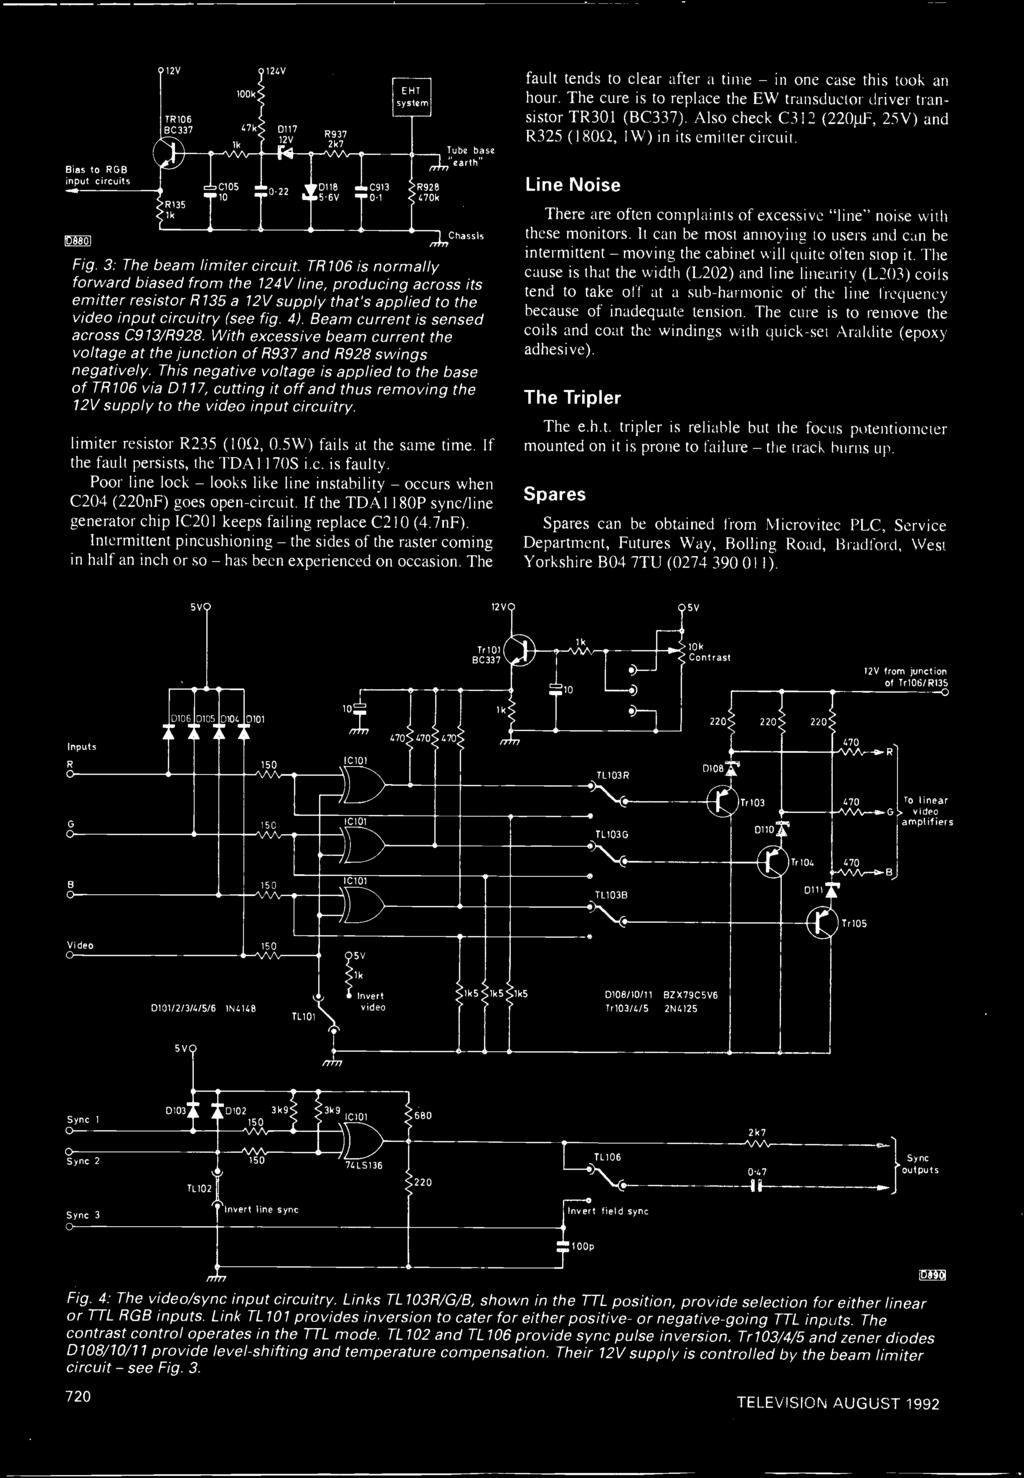 Servicing Video Satellite Developments Free Catalogue Inside Magneto Wiring 25cc Schematic Beam Current Is Sensed Across C913 R928 With Excessive The Voltage At